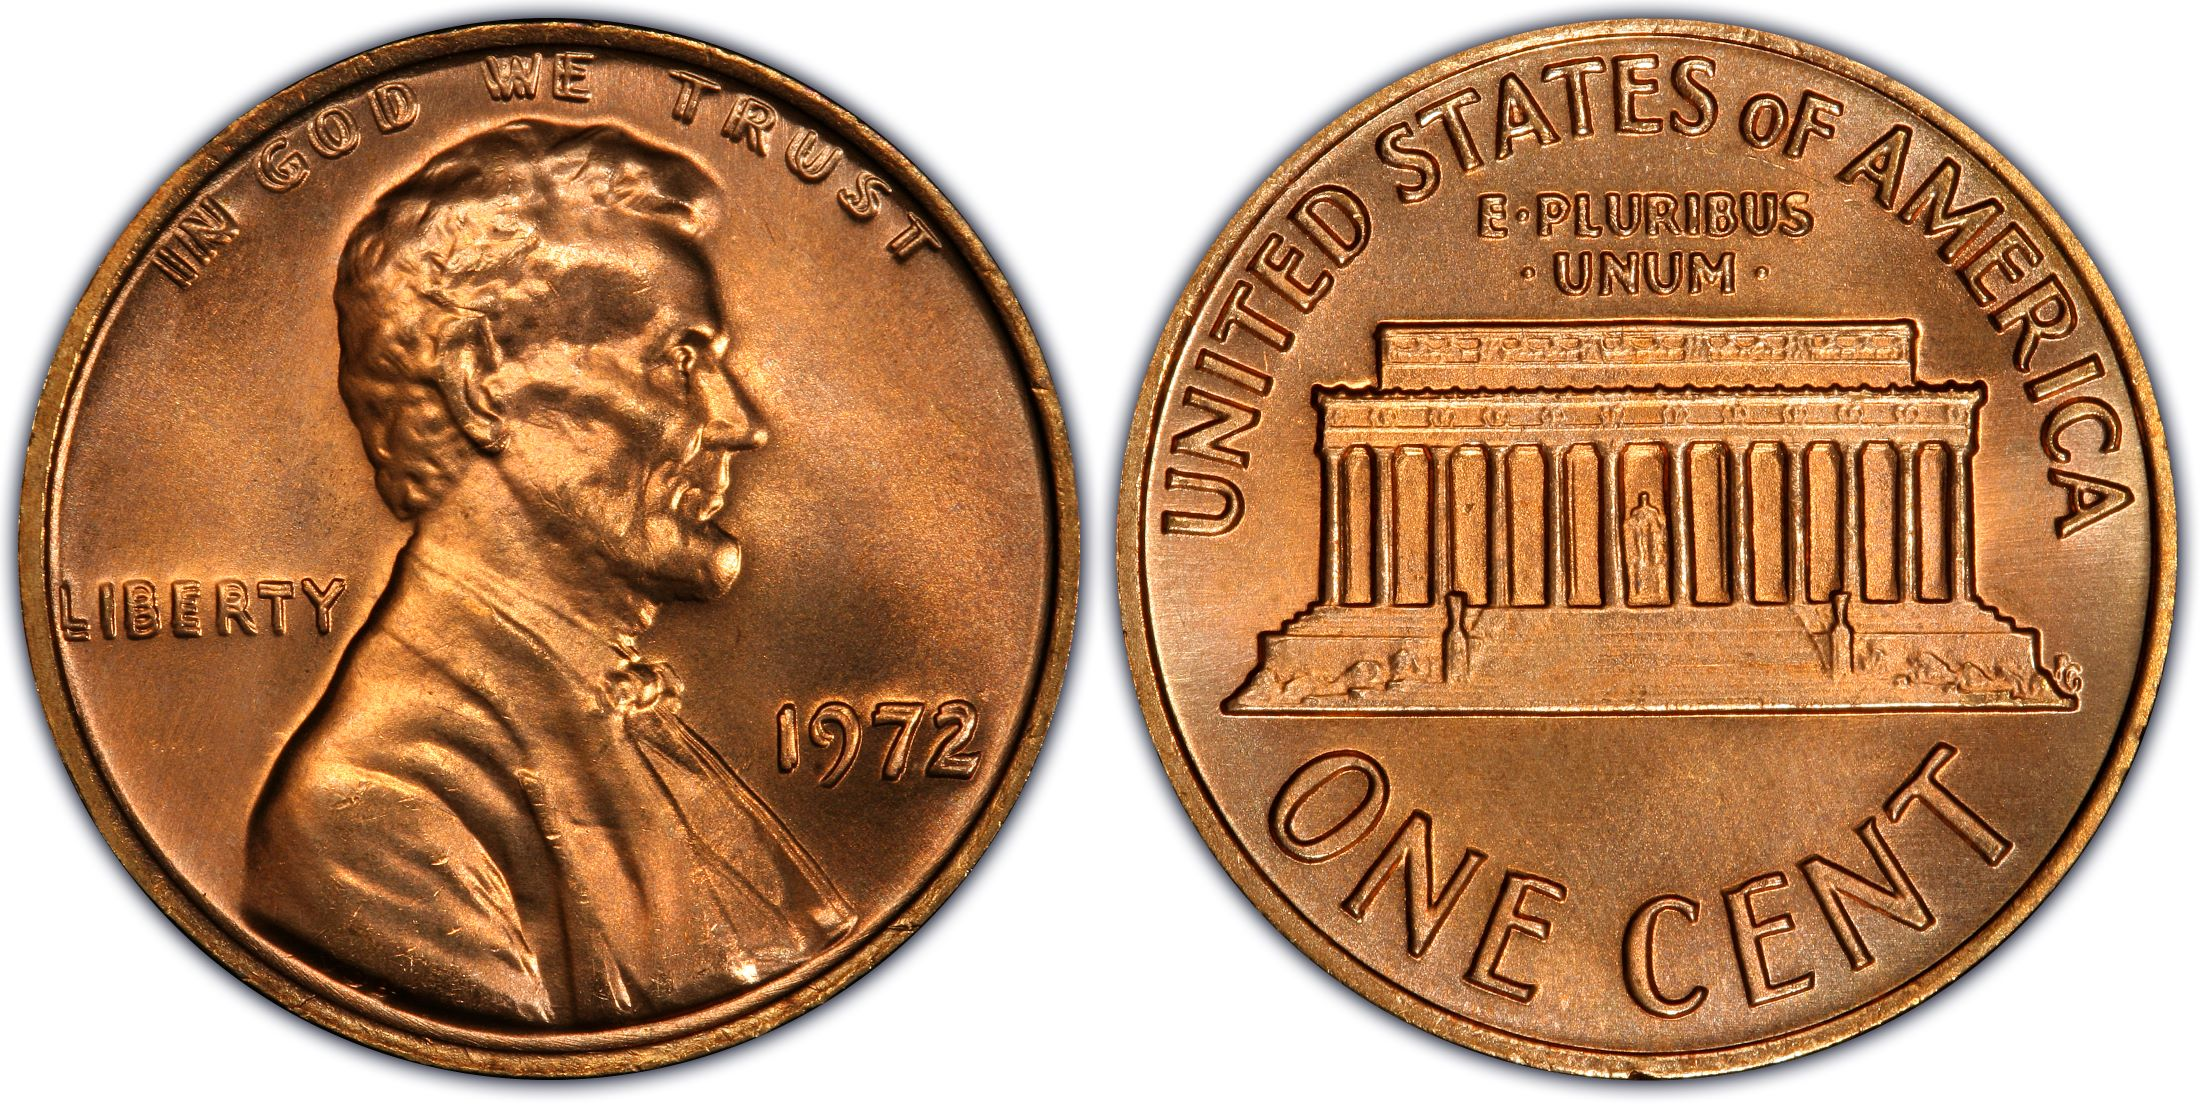 What is the meaning of obverse and reverse?